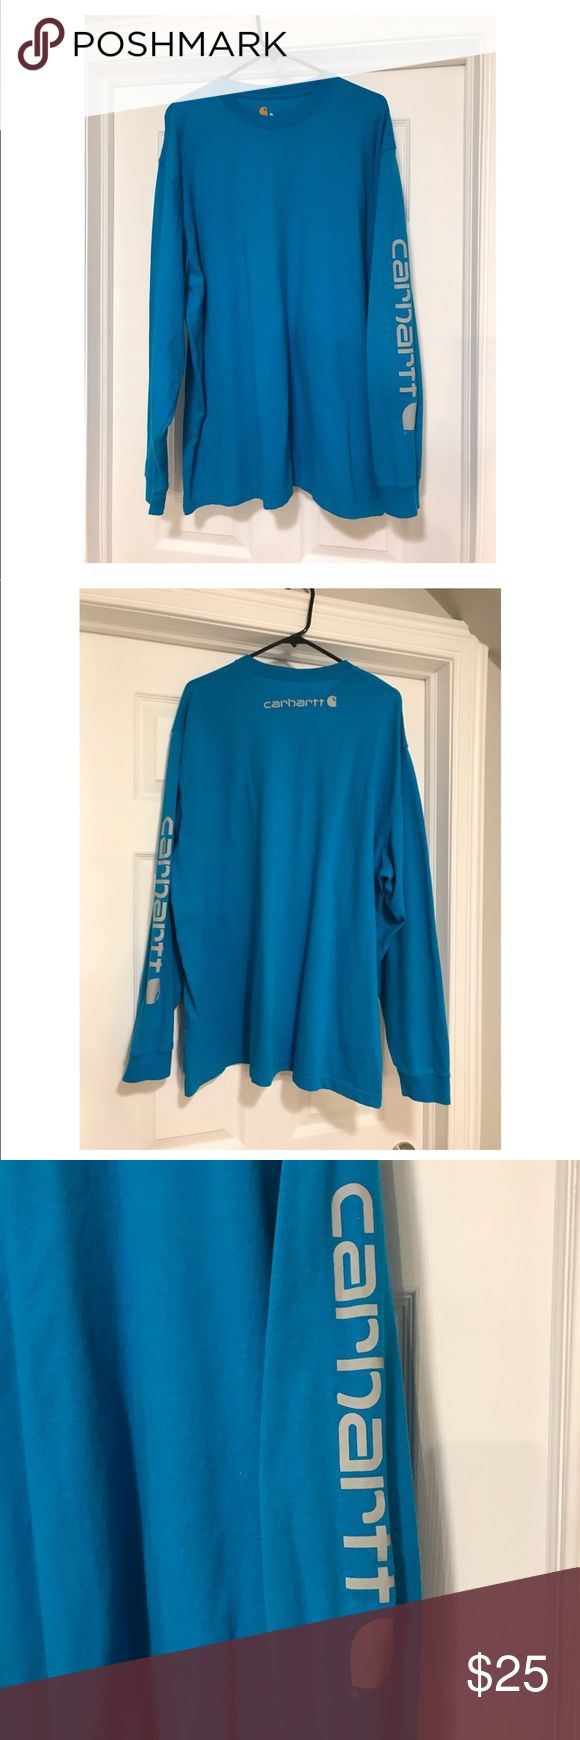 Men's Carhartt Shirt Men's Carhartt Shirt, size XL worn once. In excellent condition. Carhartt Shirts Tees - Long Sleeve